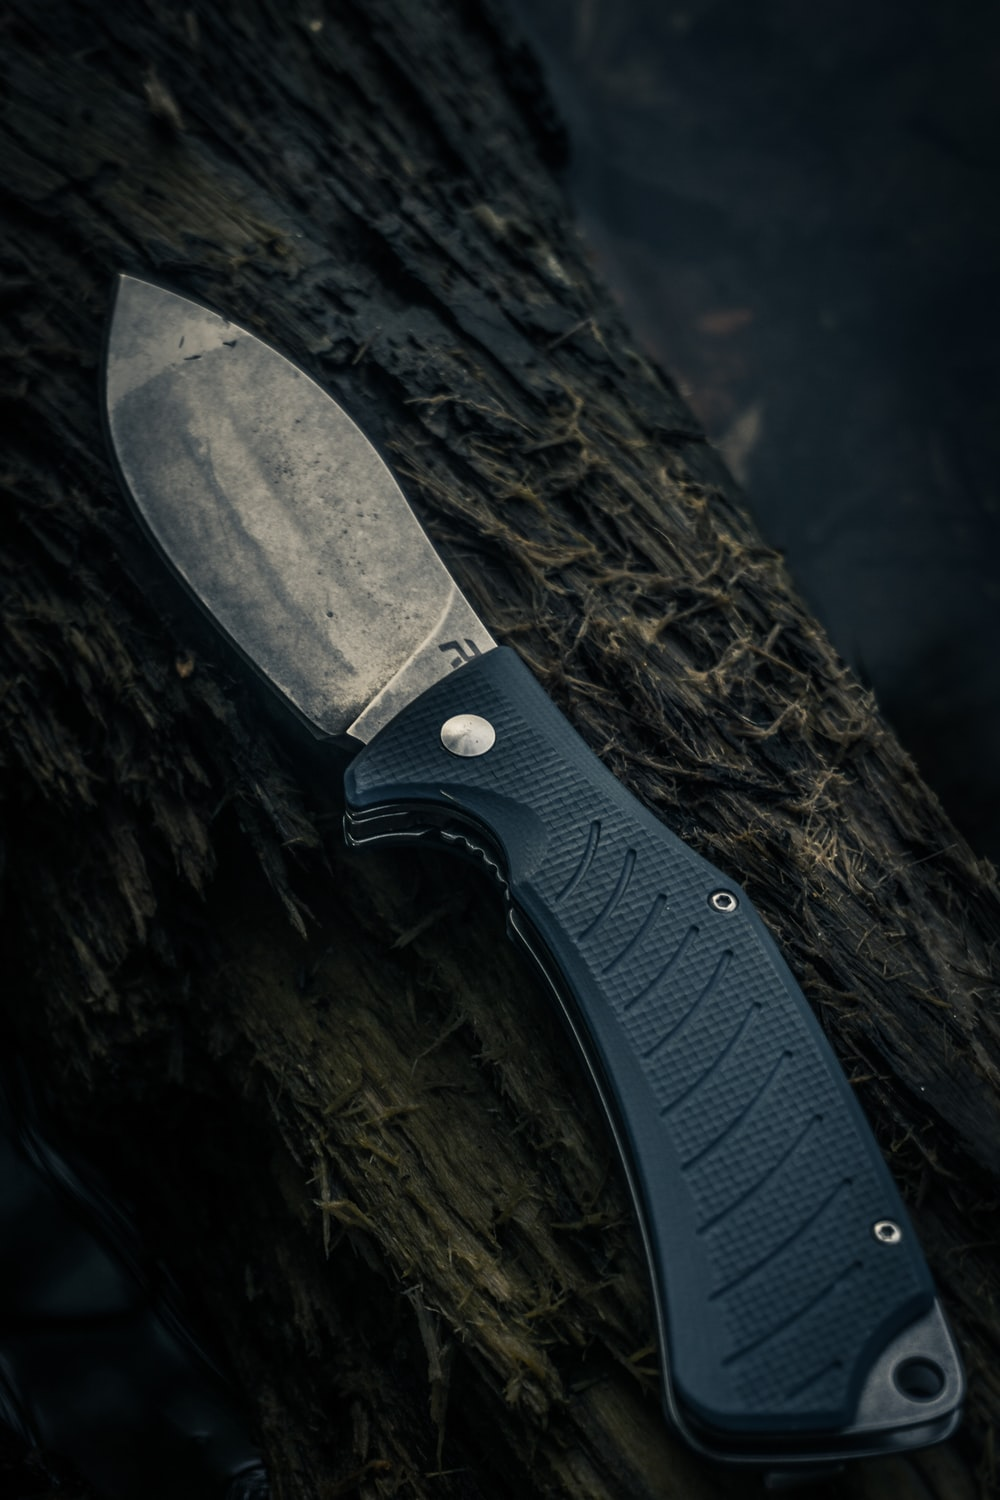 black and silver knife on brown wooden surface